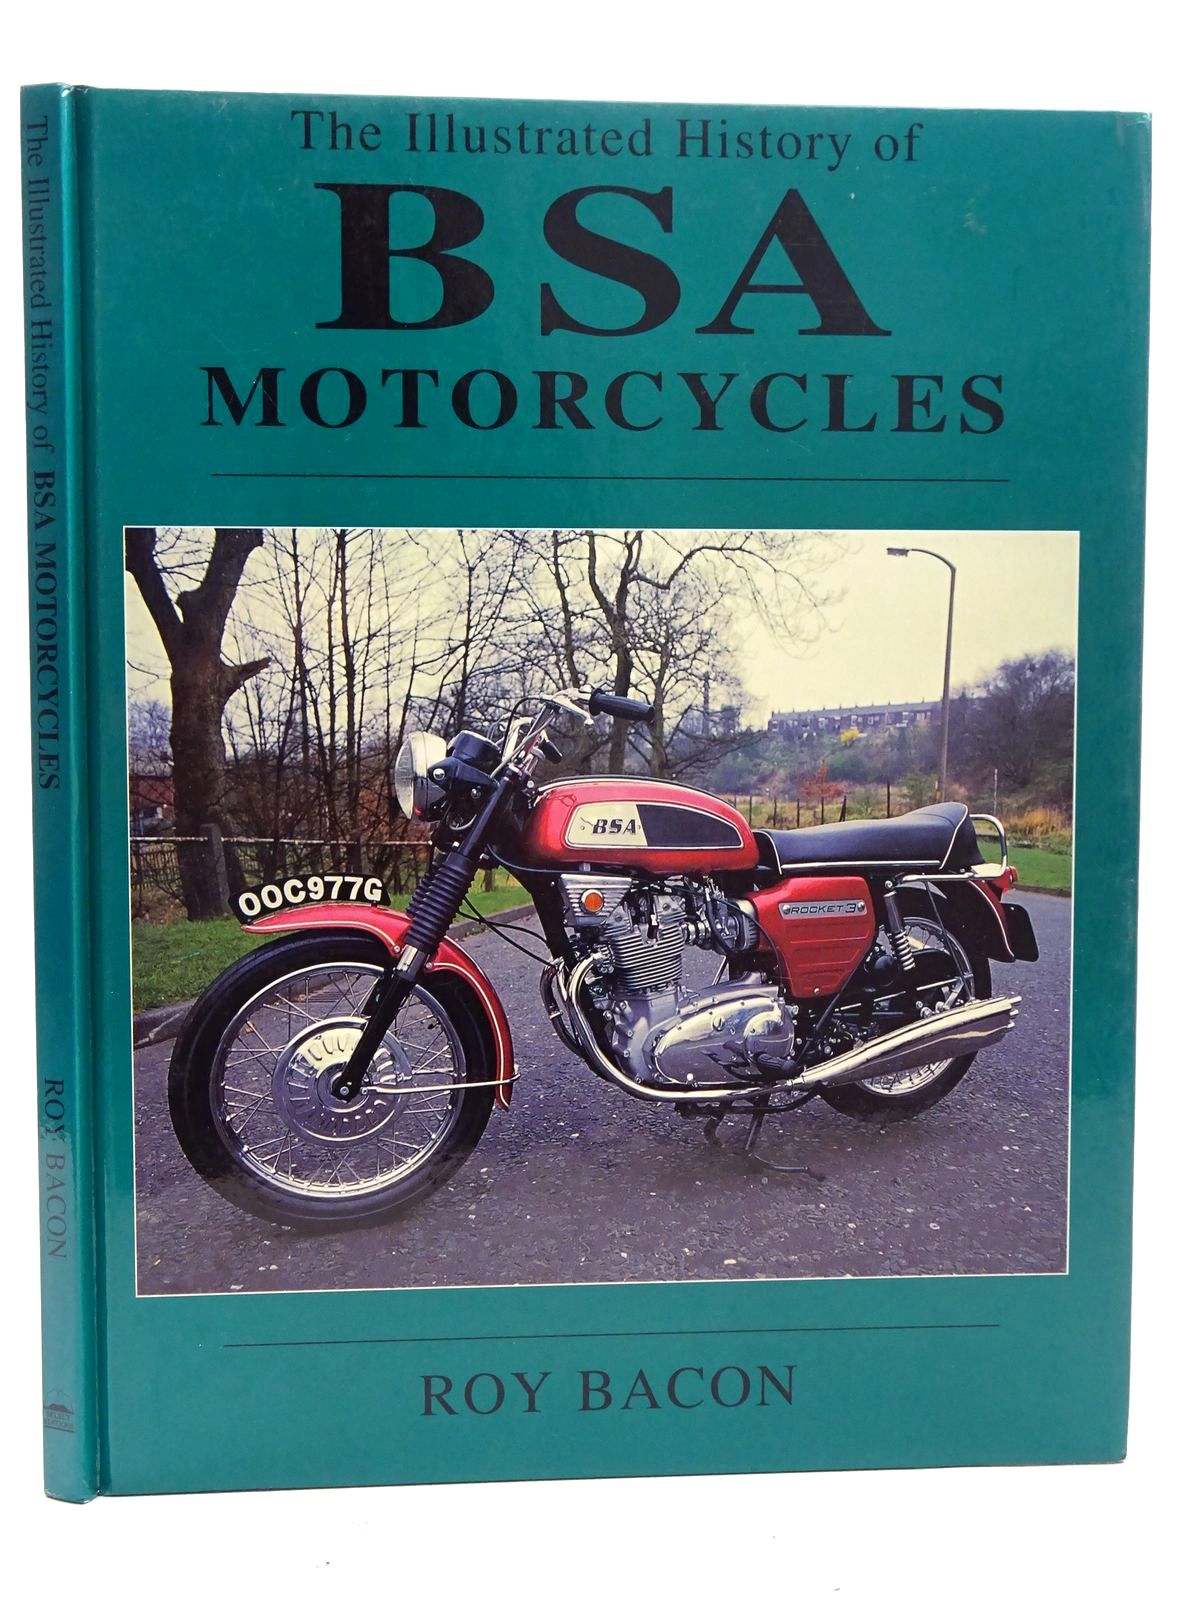 Photo of THE ILLUSTRATED MOTORCYCLE LEGENDS BSA written by Bacon, Roy published by Promotional Reprint Company Ltd. (STOCK CODE: 1610558)  for sale by Stella & Rose's Books